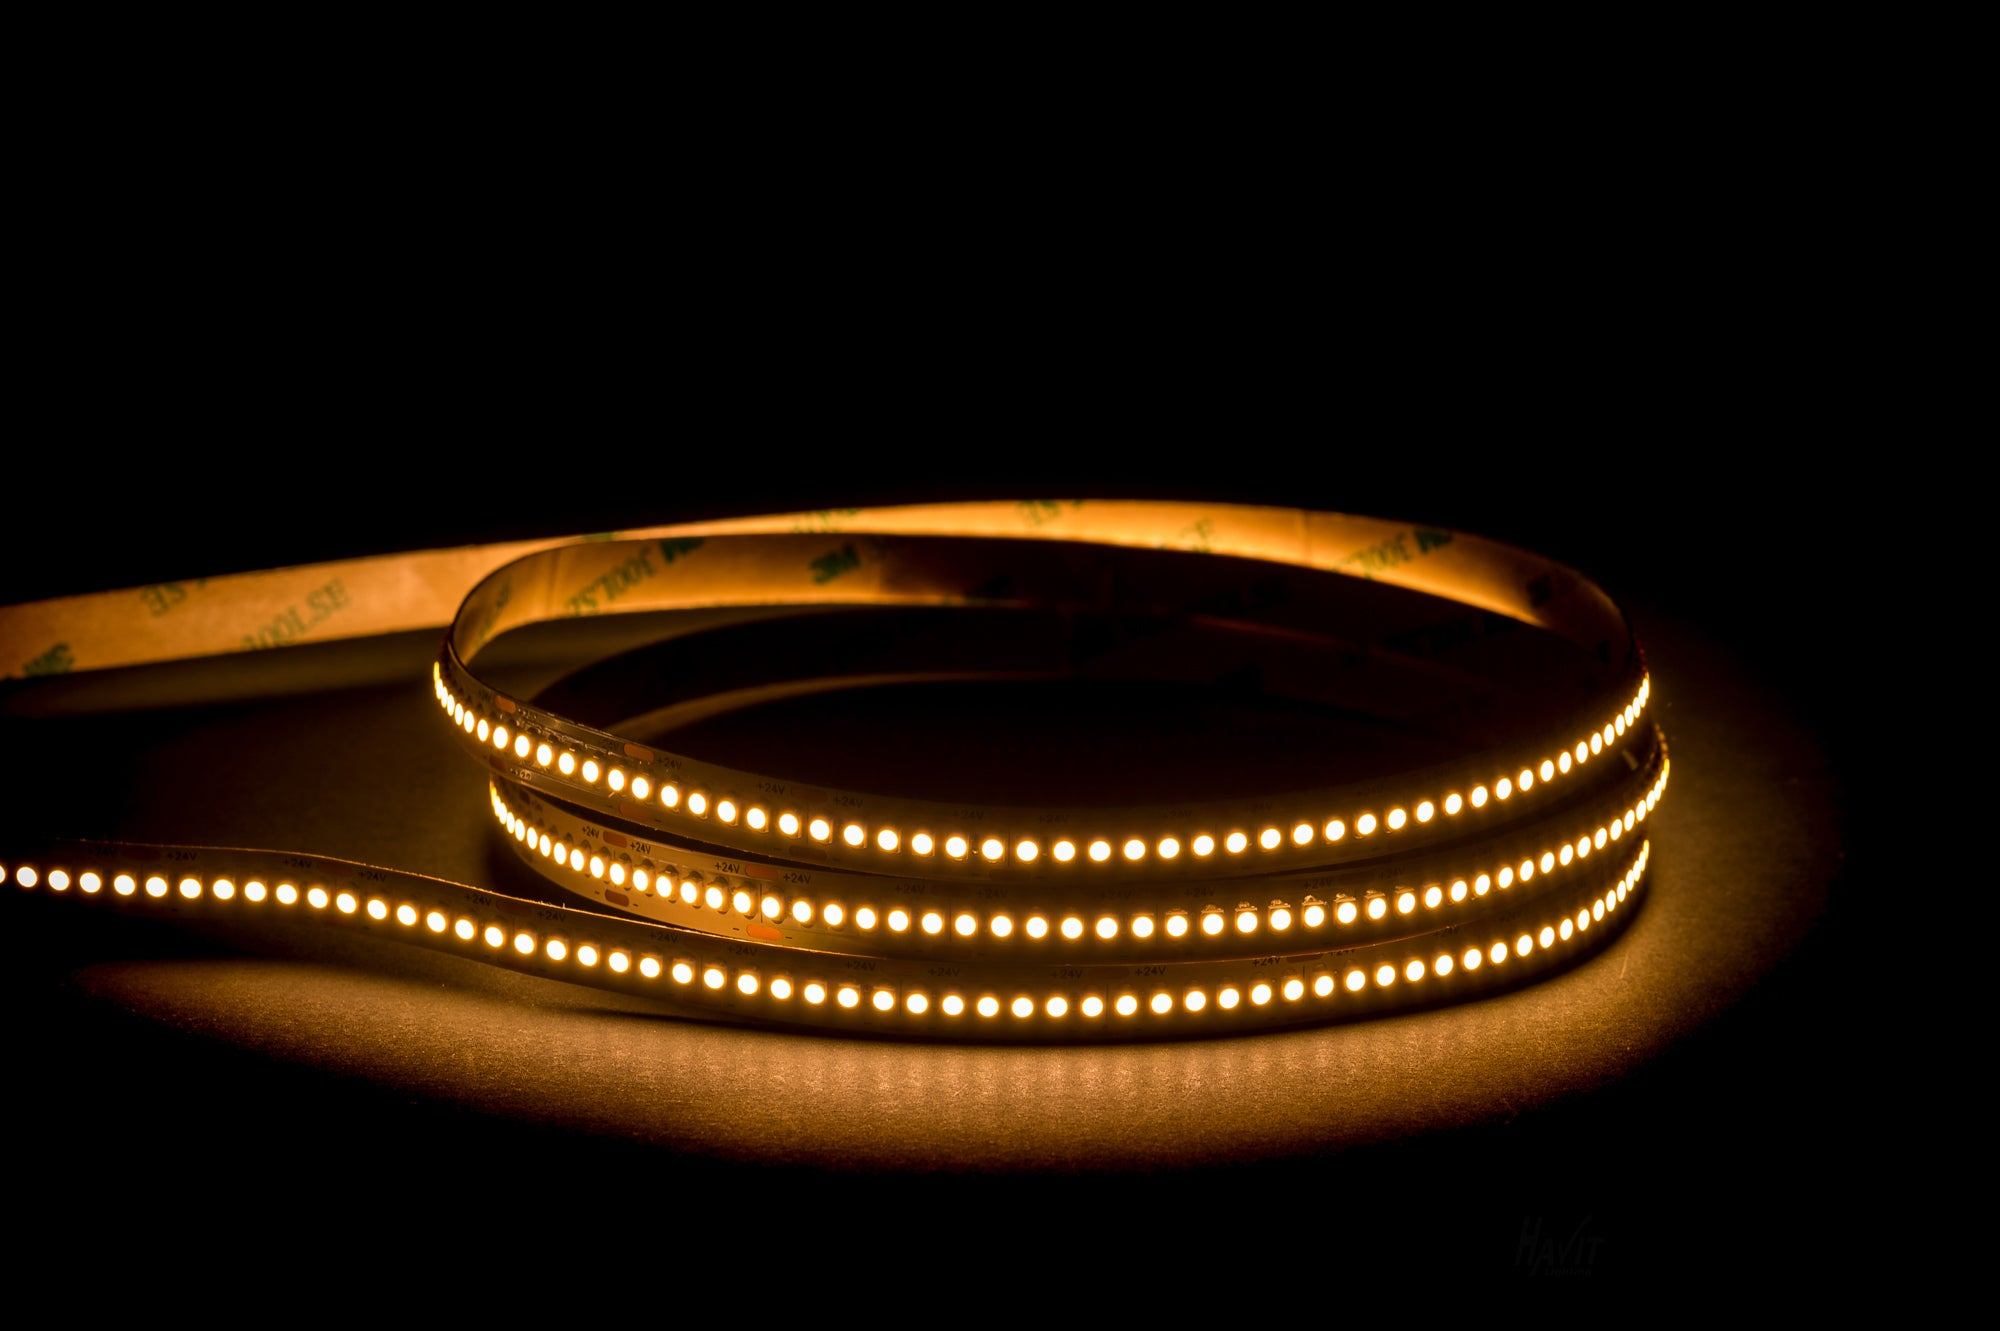 HV9723-IP20-240-3K-1 - 19.2w IP20 LED Strip 3000k